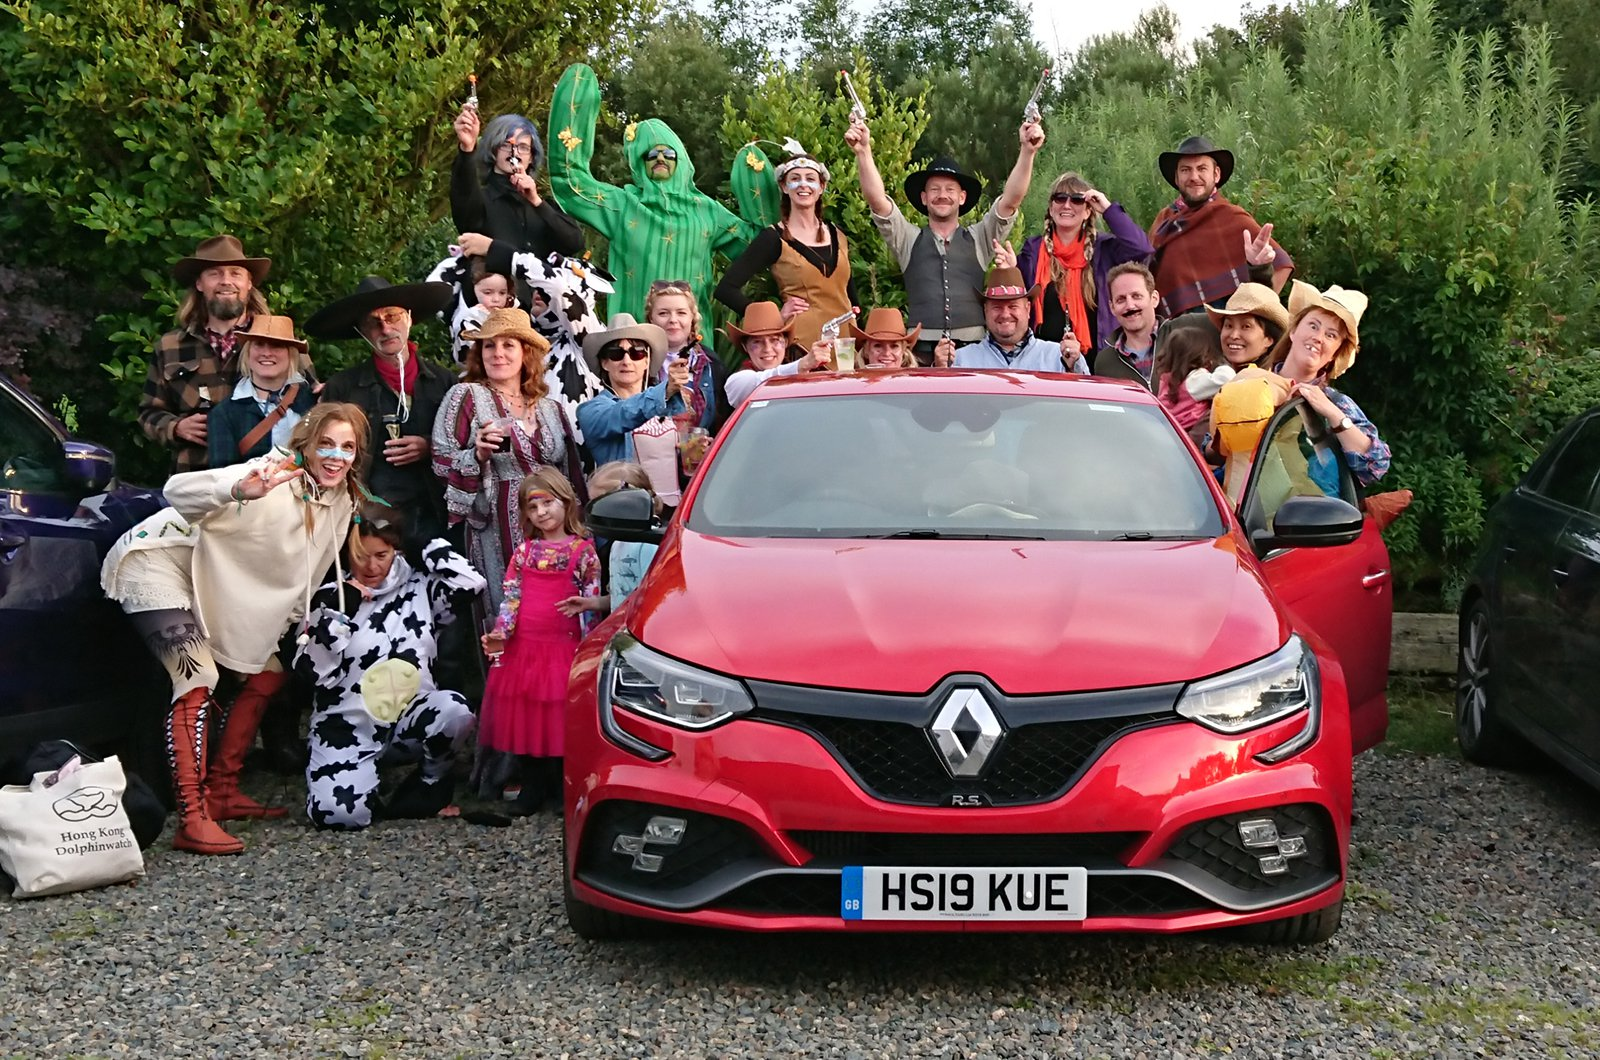 LT Renault Megane RS with people in fancy dress